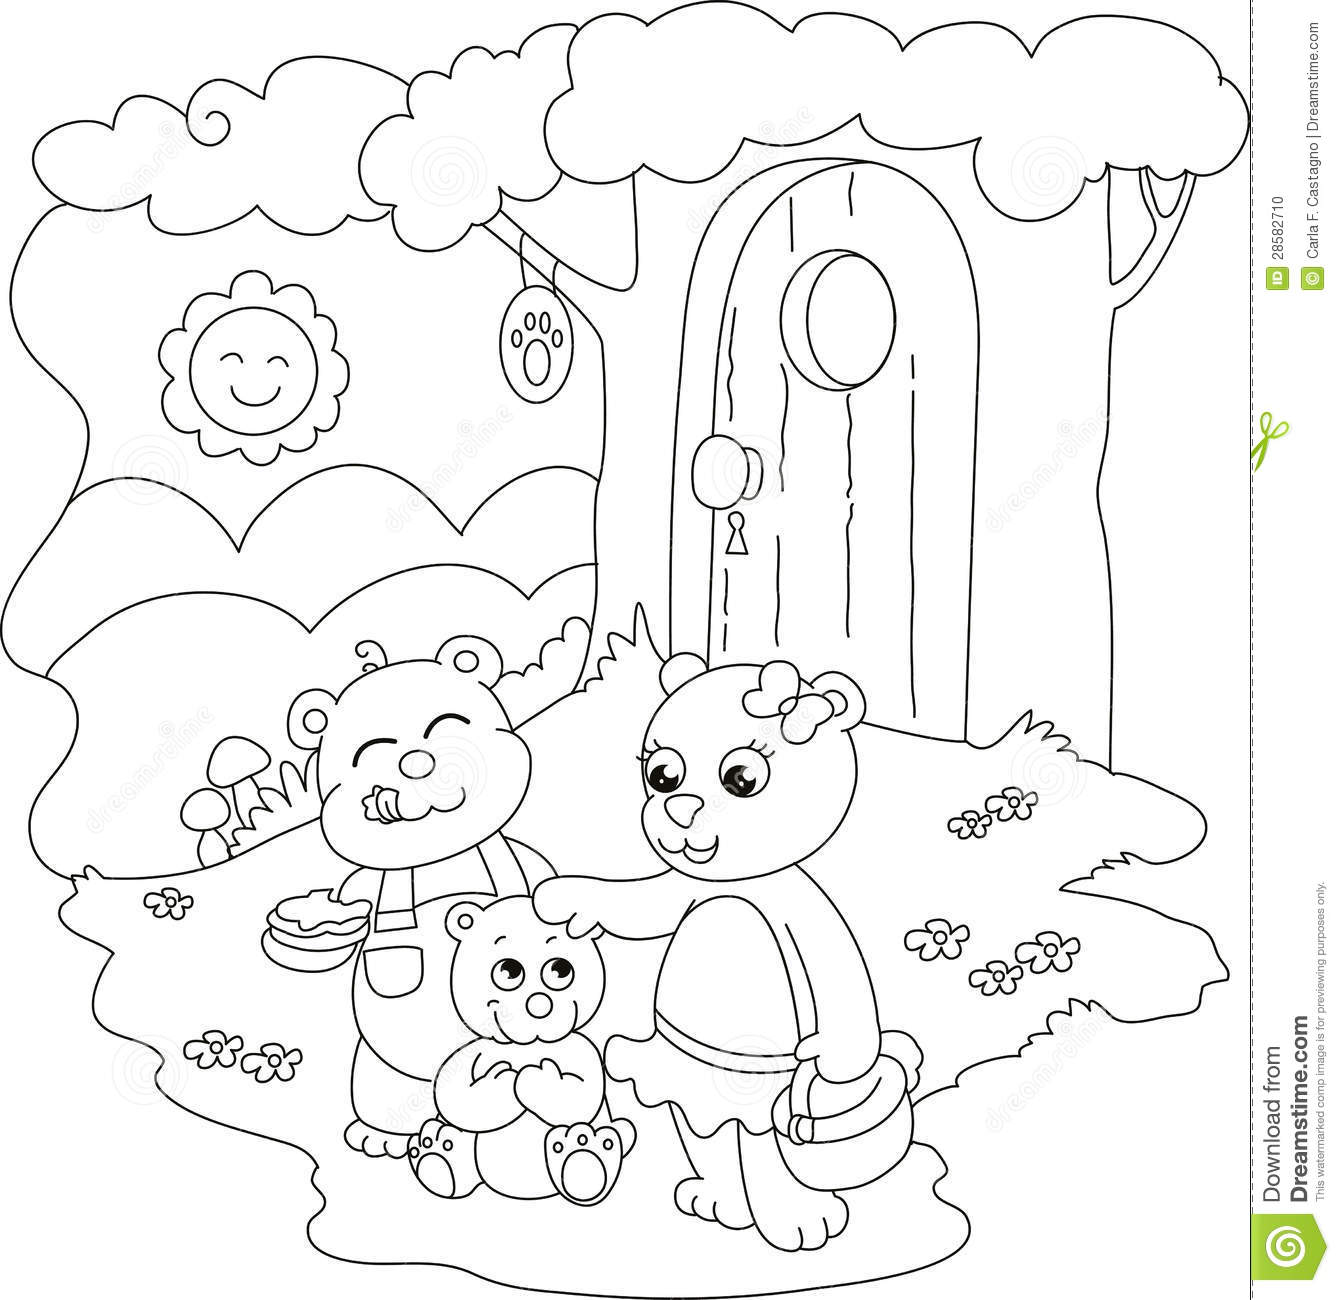 HD wallpapers three bears coloring page